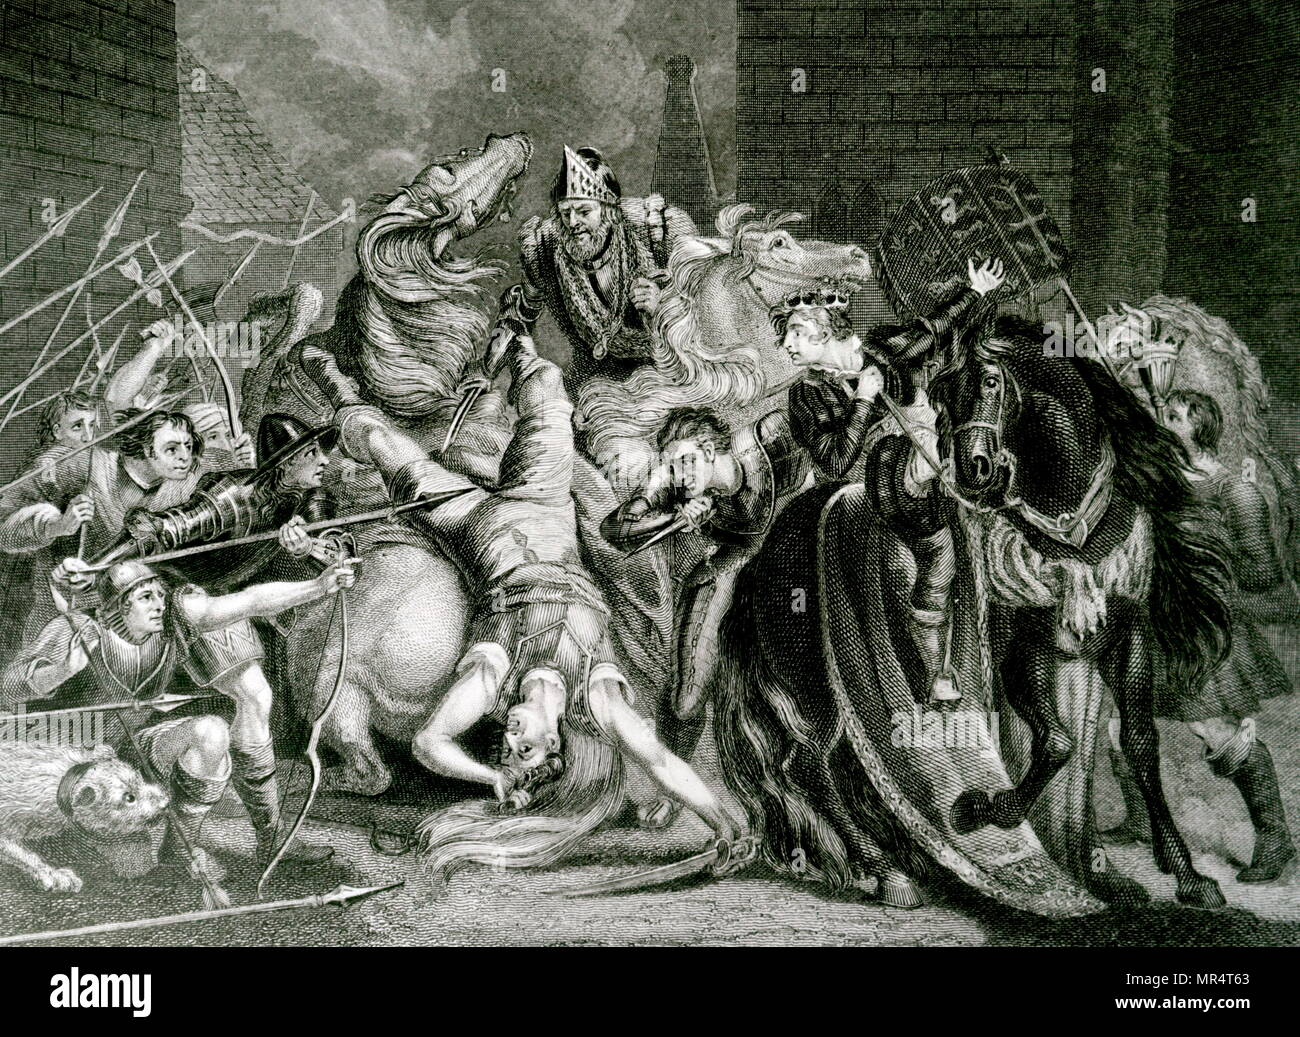 Engraving depicting William Walworth striking Wat Tyler as he speaks to Richard II at Smithfield. Tyler was taken to St Bartholomew's Hospital, but Walworth had him dragged out and beheaded. Sir William Walworth (d. 1385), was twice Lord Mayor of London, best known for killing Wat Tyler. Wat Tyler (1342-1381) leader of the 1381 Peasants' Revolt in England. Richard II of England (1367-1400) King of England. Dated 19th century - Stock Image